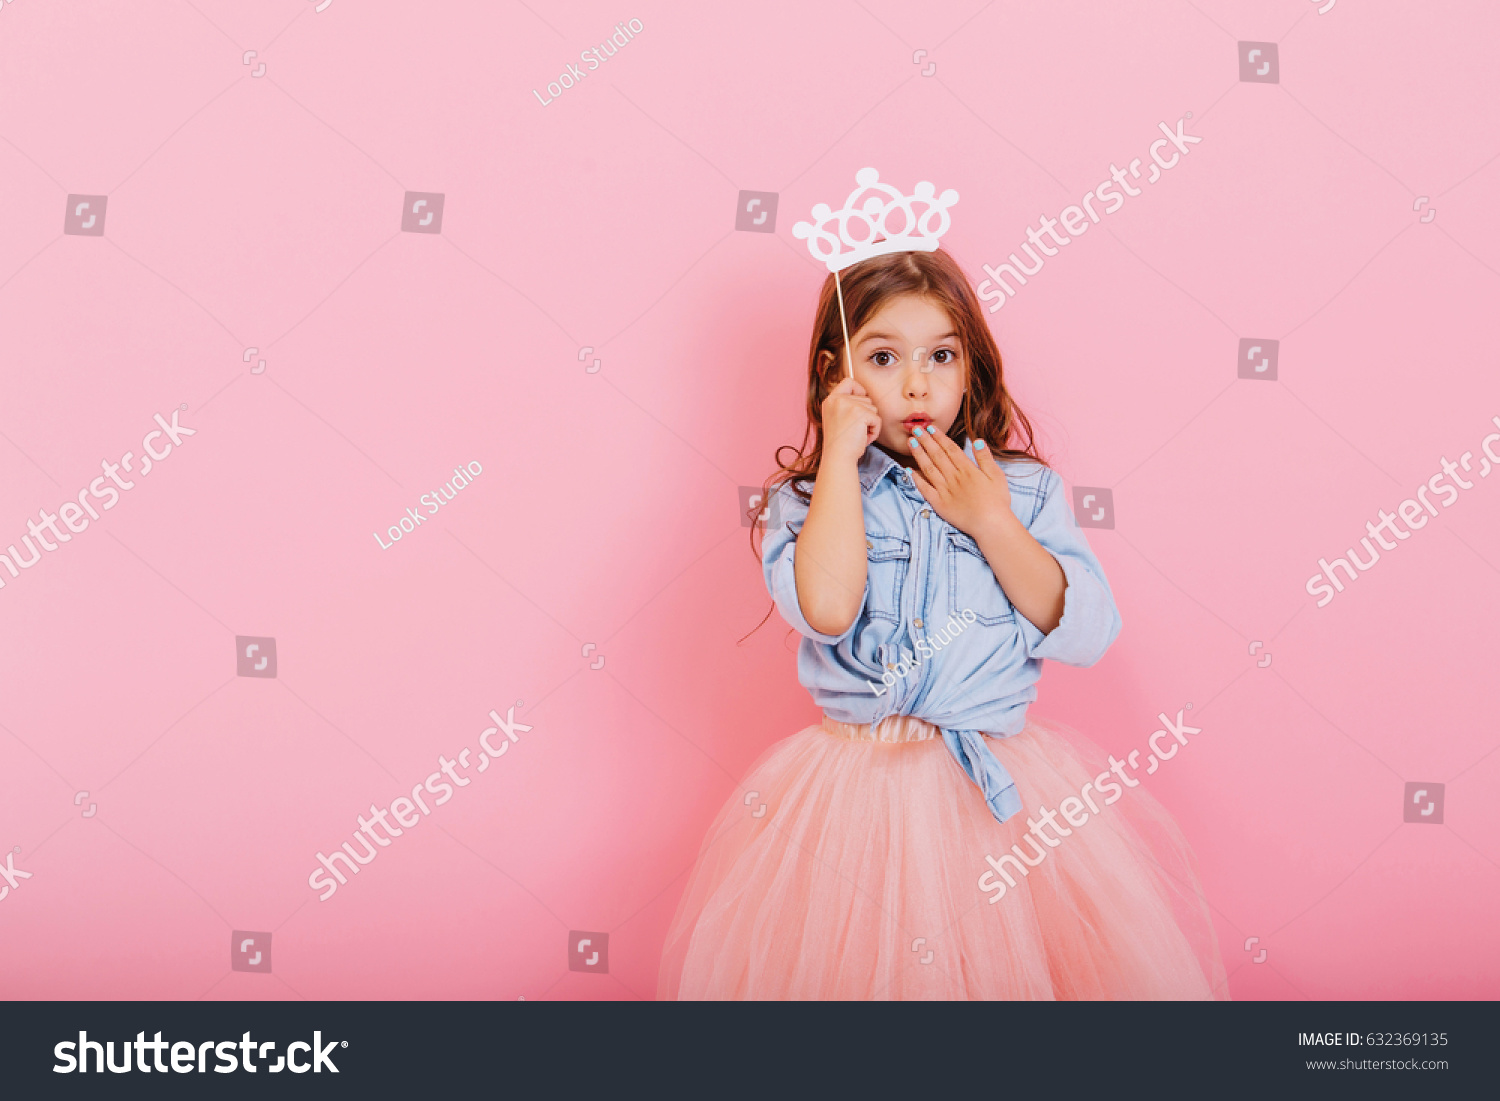 Surprised pretty young girl in tulle skirt with crown on head expressing isolated on pink background. Amazing cute little princess at carnival. Place for text #632369135